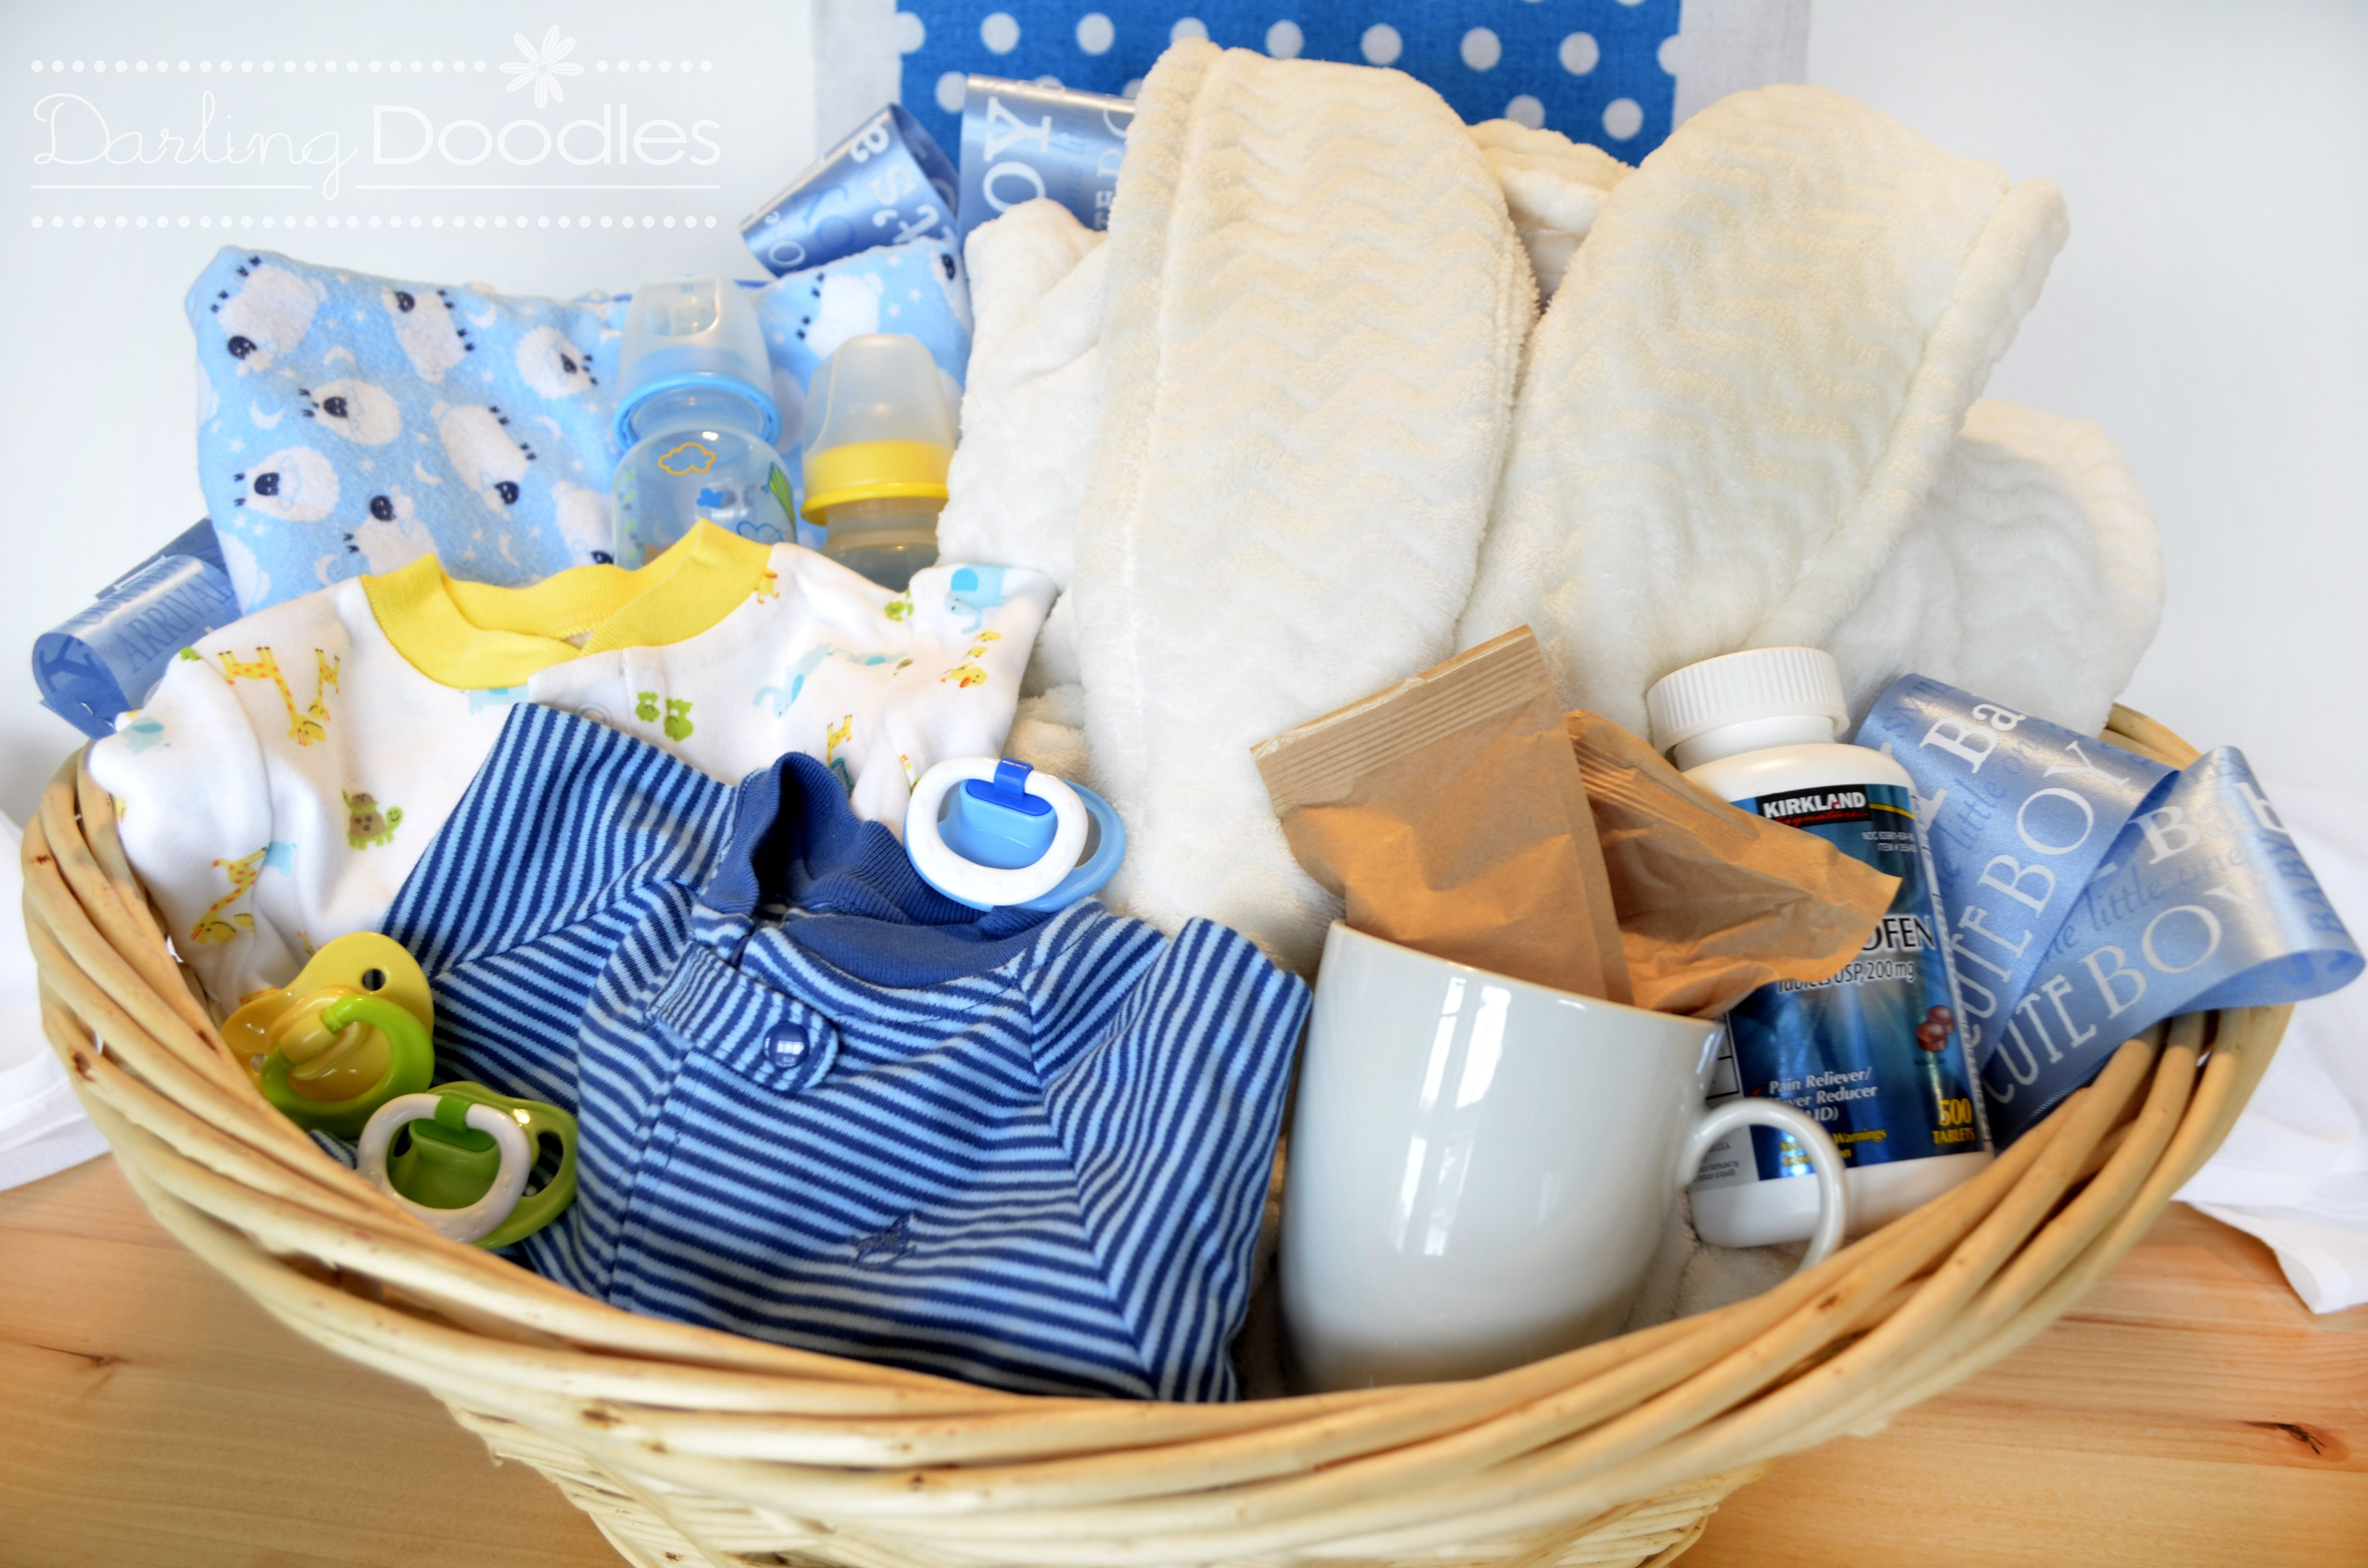 Baby Boy Gift Basket Ideas  Up All Night Survival Kit Darling Doodles